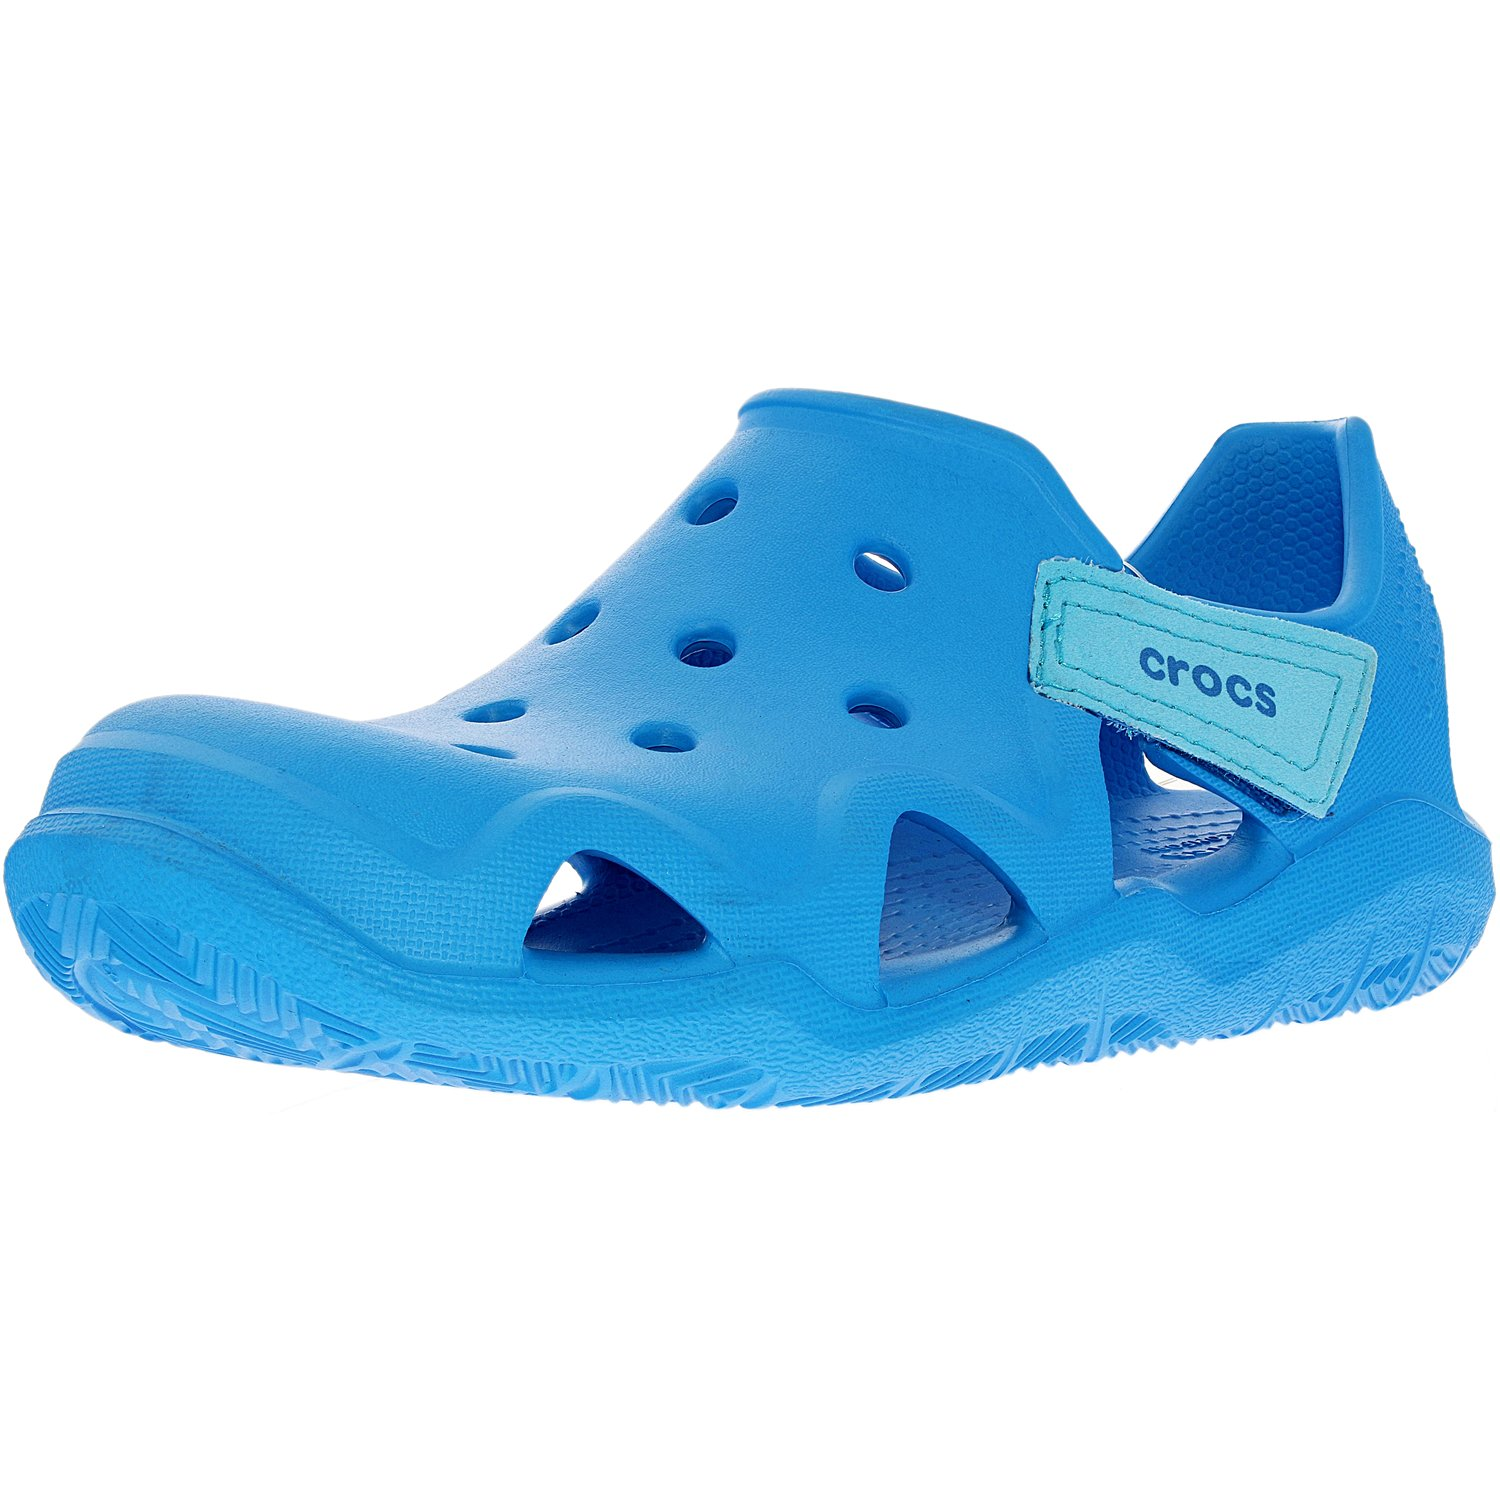 Crocs Boy's Swiftwater Wave Ocean Ankle-High Flat Shoe 10M by Crocs